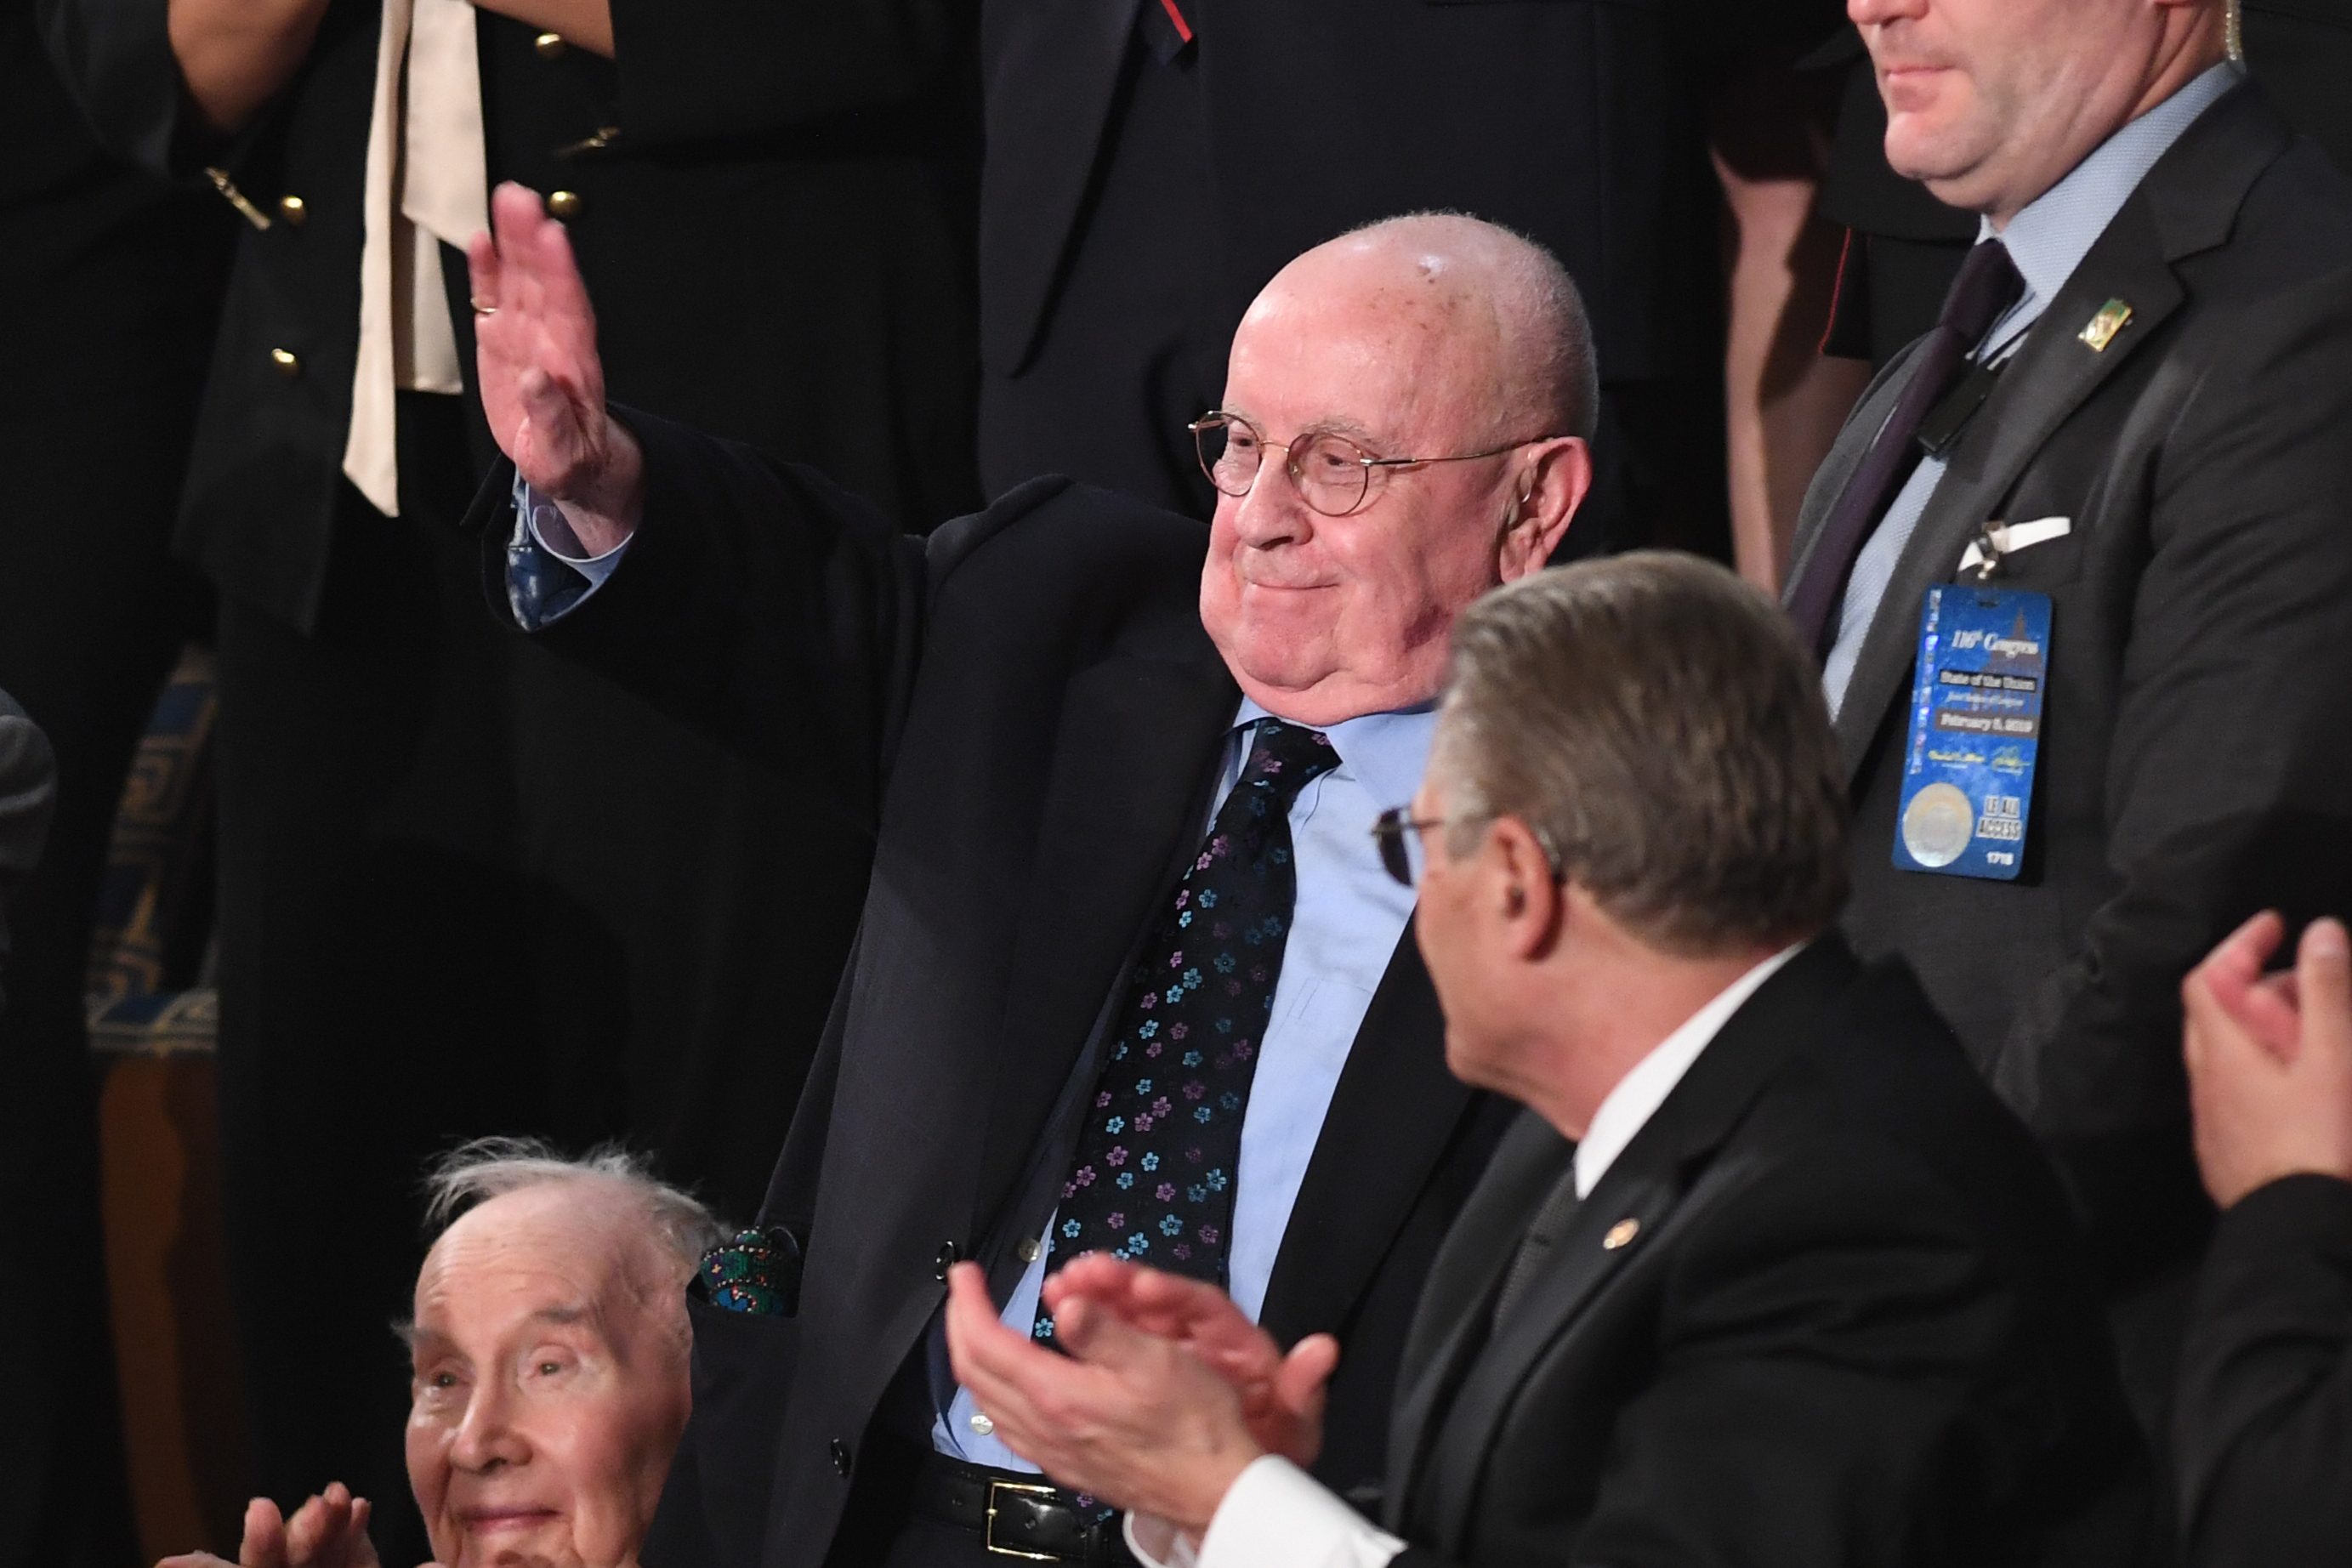 Special guest Judah Samet, a survivor of the Tree of Life Synagogue, waves as he is acknowledged during the State of the Union address at the US Capitol in Washington, DC, on Feb. 5, 2019.